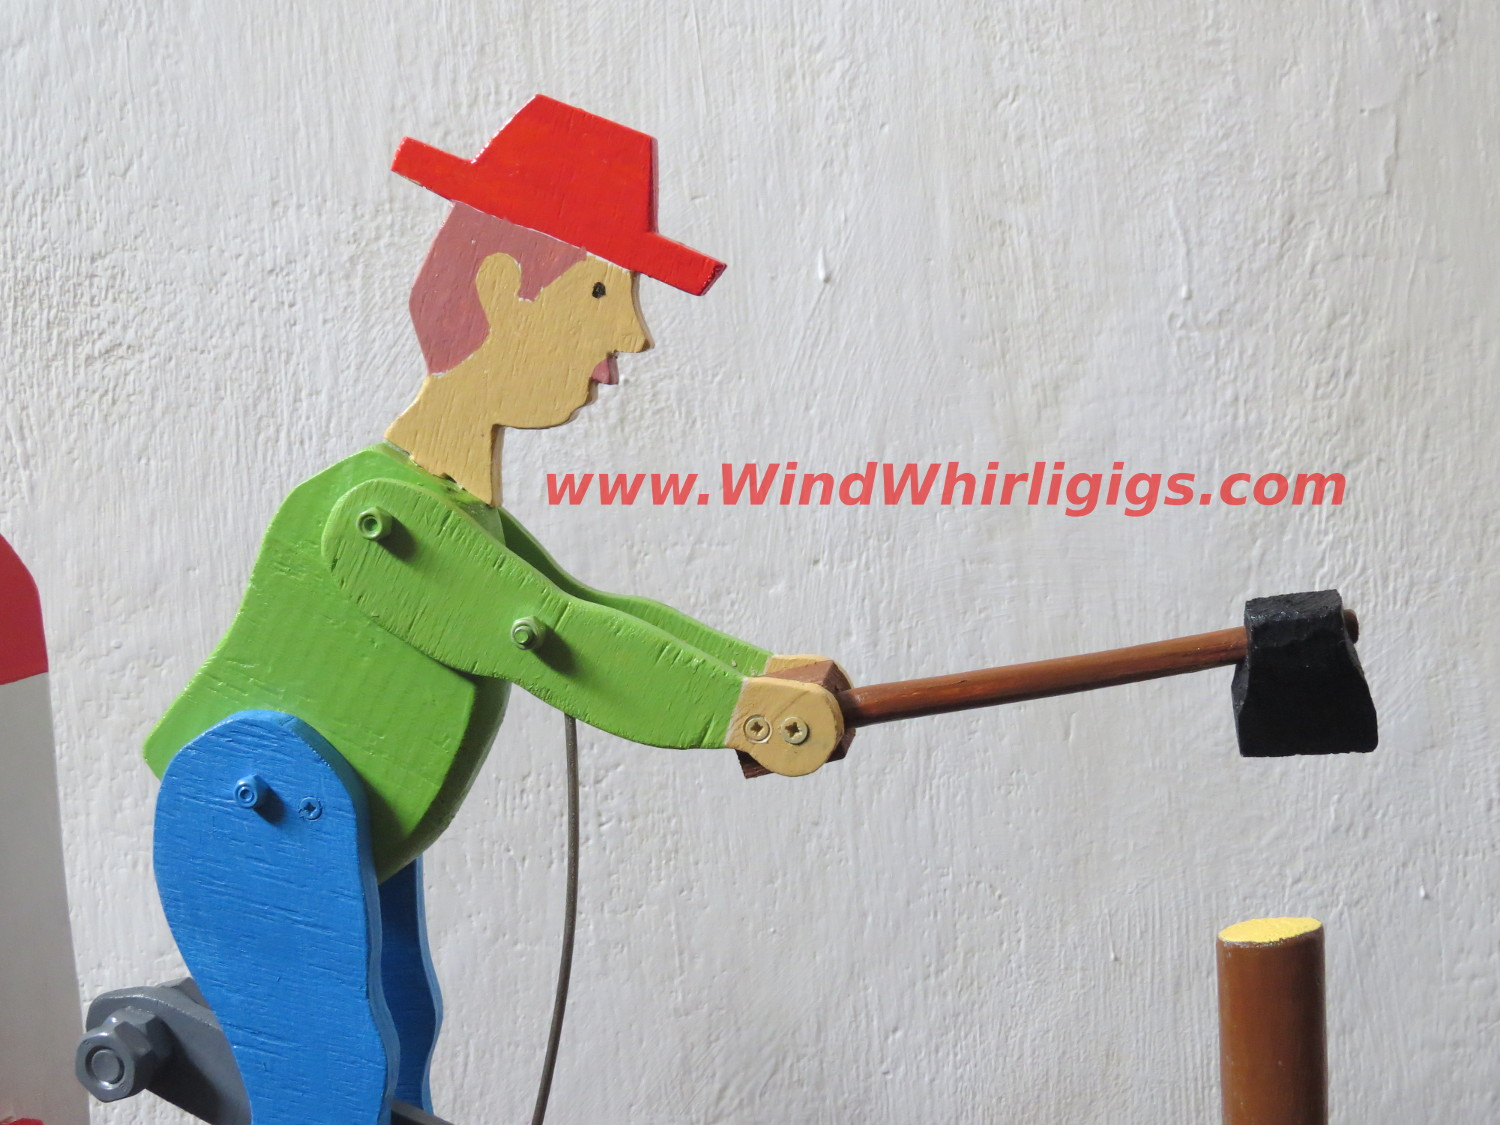 Wood Chopper Whirligig. Wind-driven whirligig.